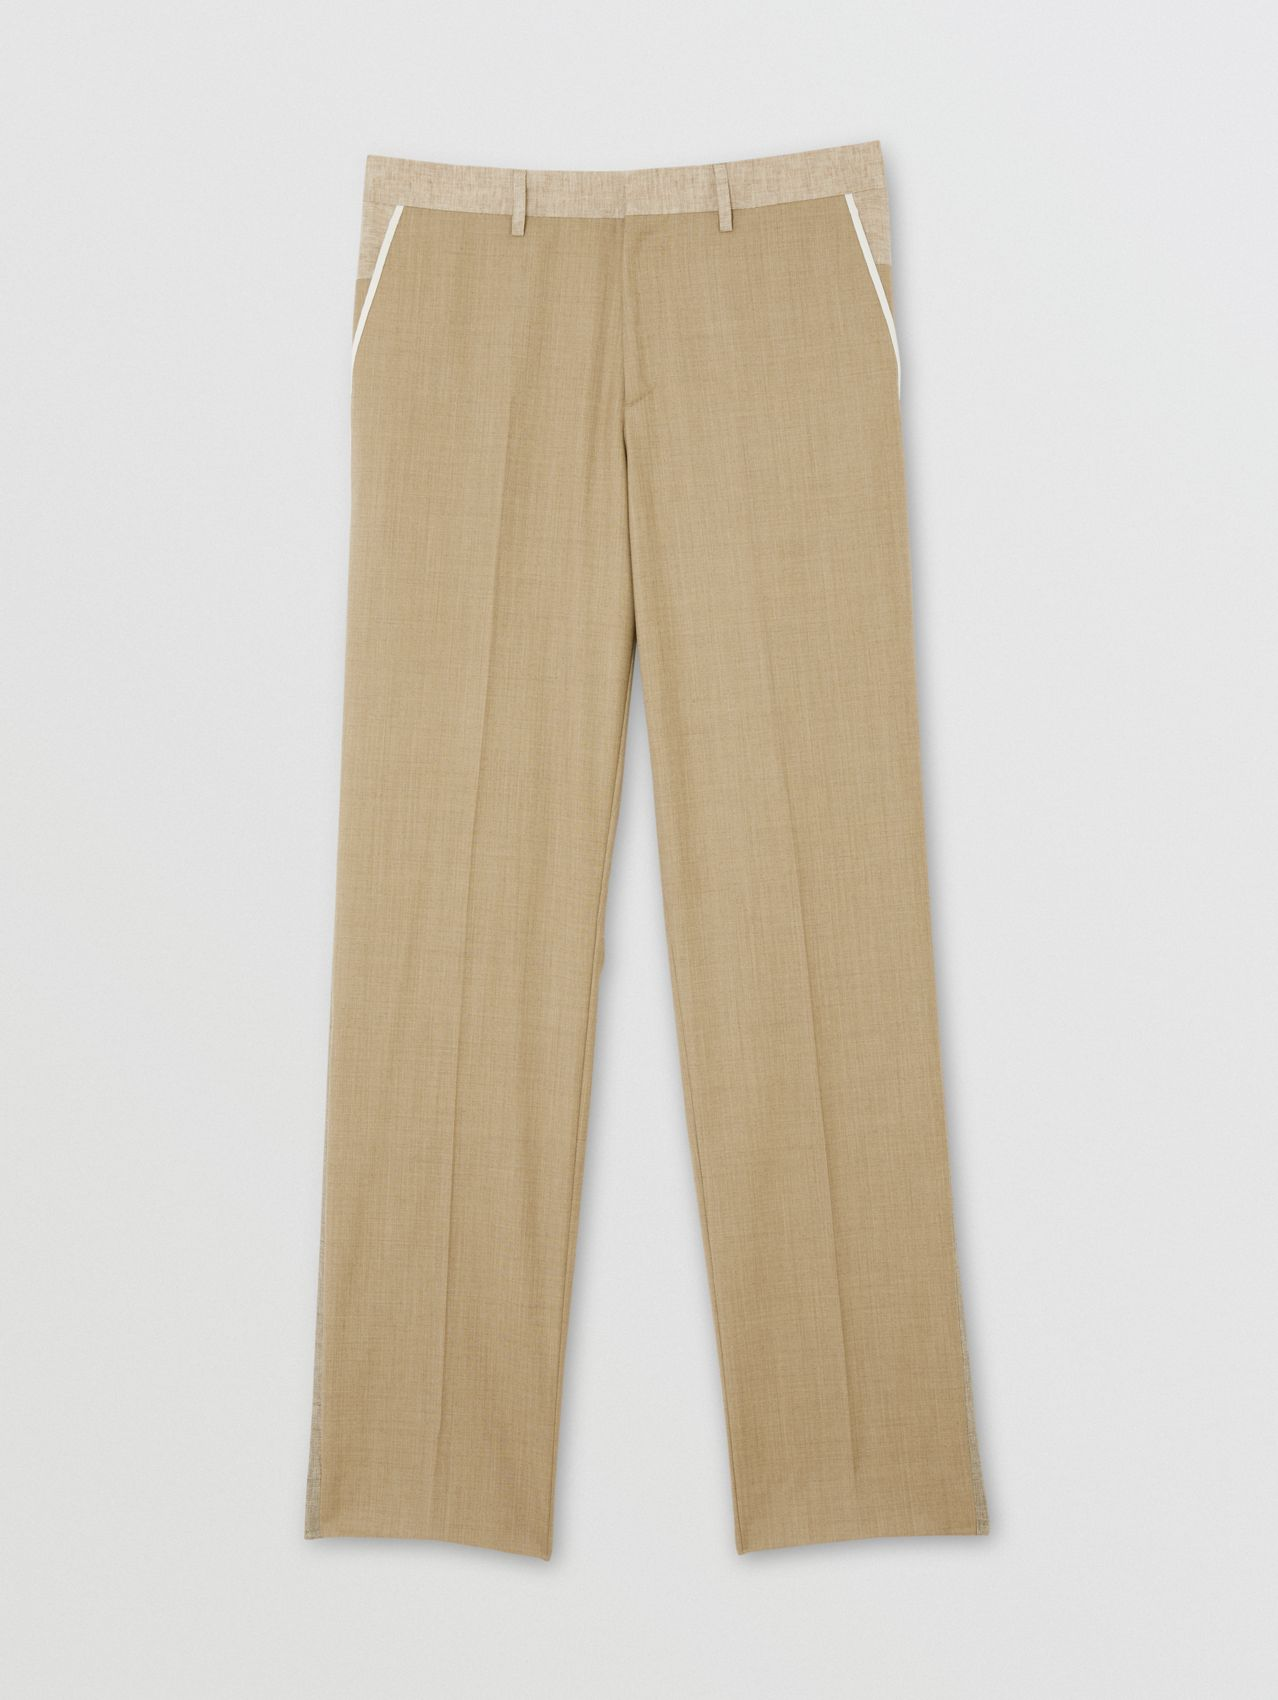 English Fit Wool Cashmere and Linen Tailored Trousers (Pecan Melange)